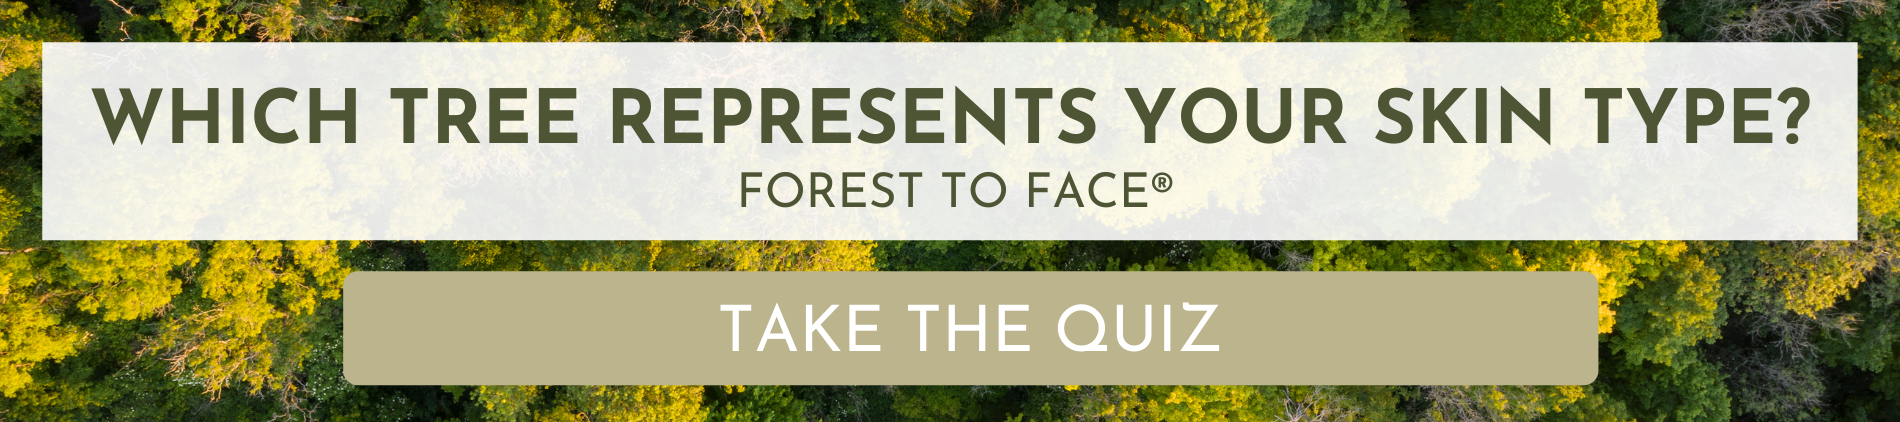 skincare from trees